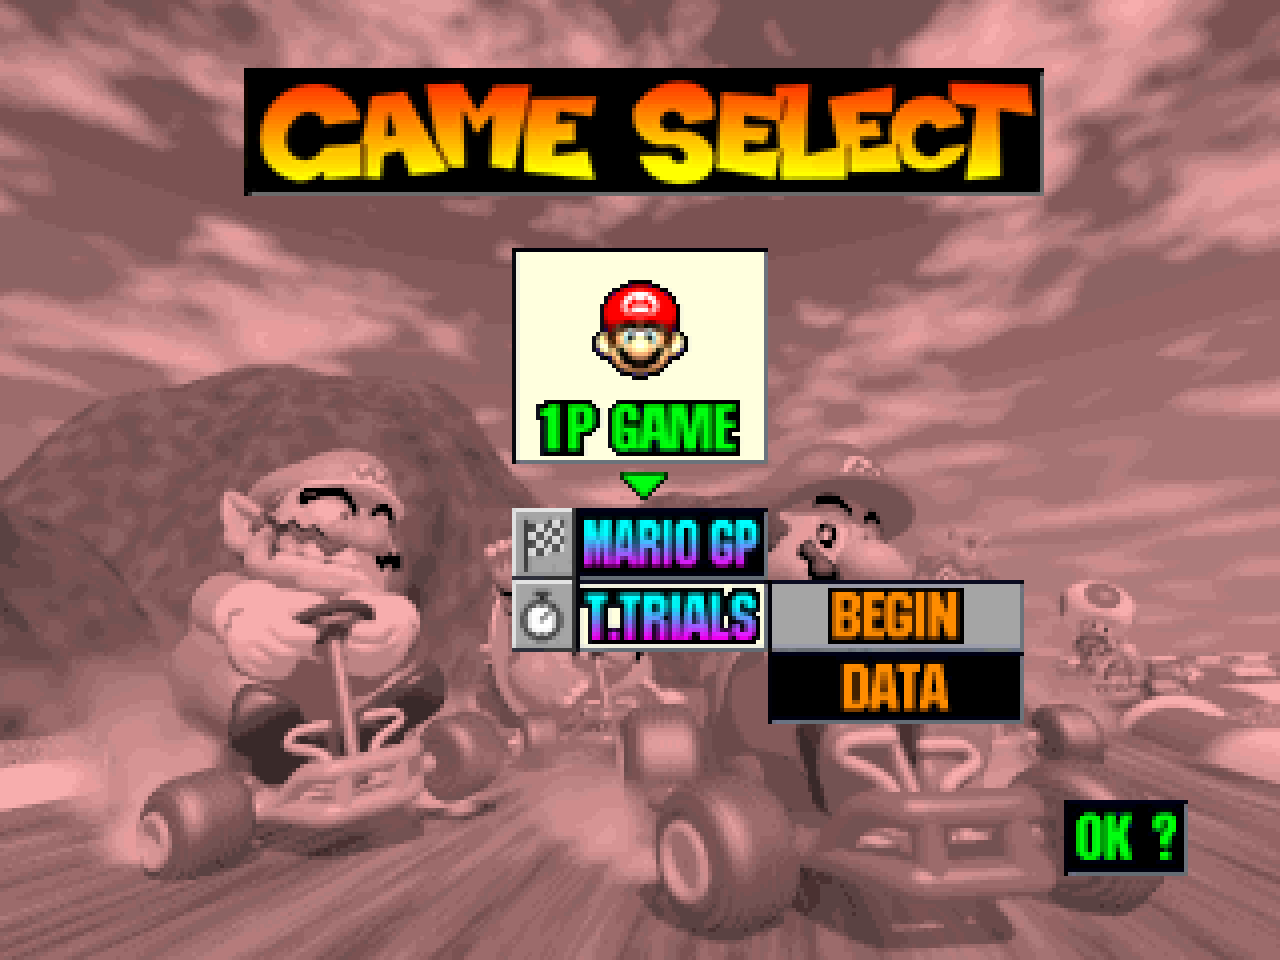 https://s3.eu-west-3.amazonaws.com/games.anthony-dessalles.com/Mario Kart 64 N64 2020 - Screenshots/Mario Kart 64-201118-215737.png